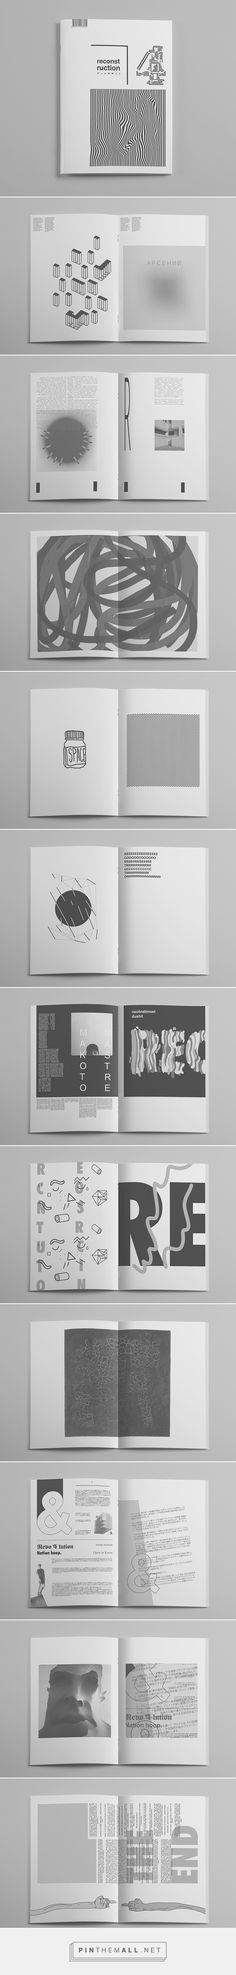 Graphic Design | Magazine Design | RE4 Fanzine by Ignat Makoto